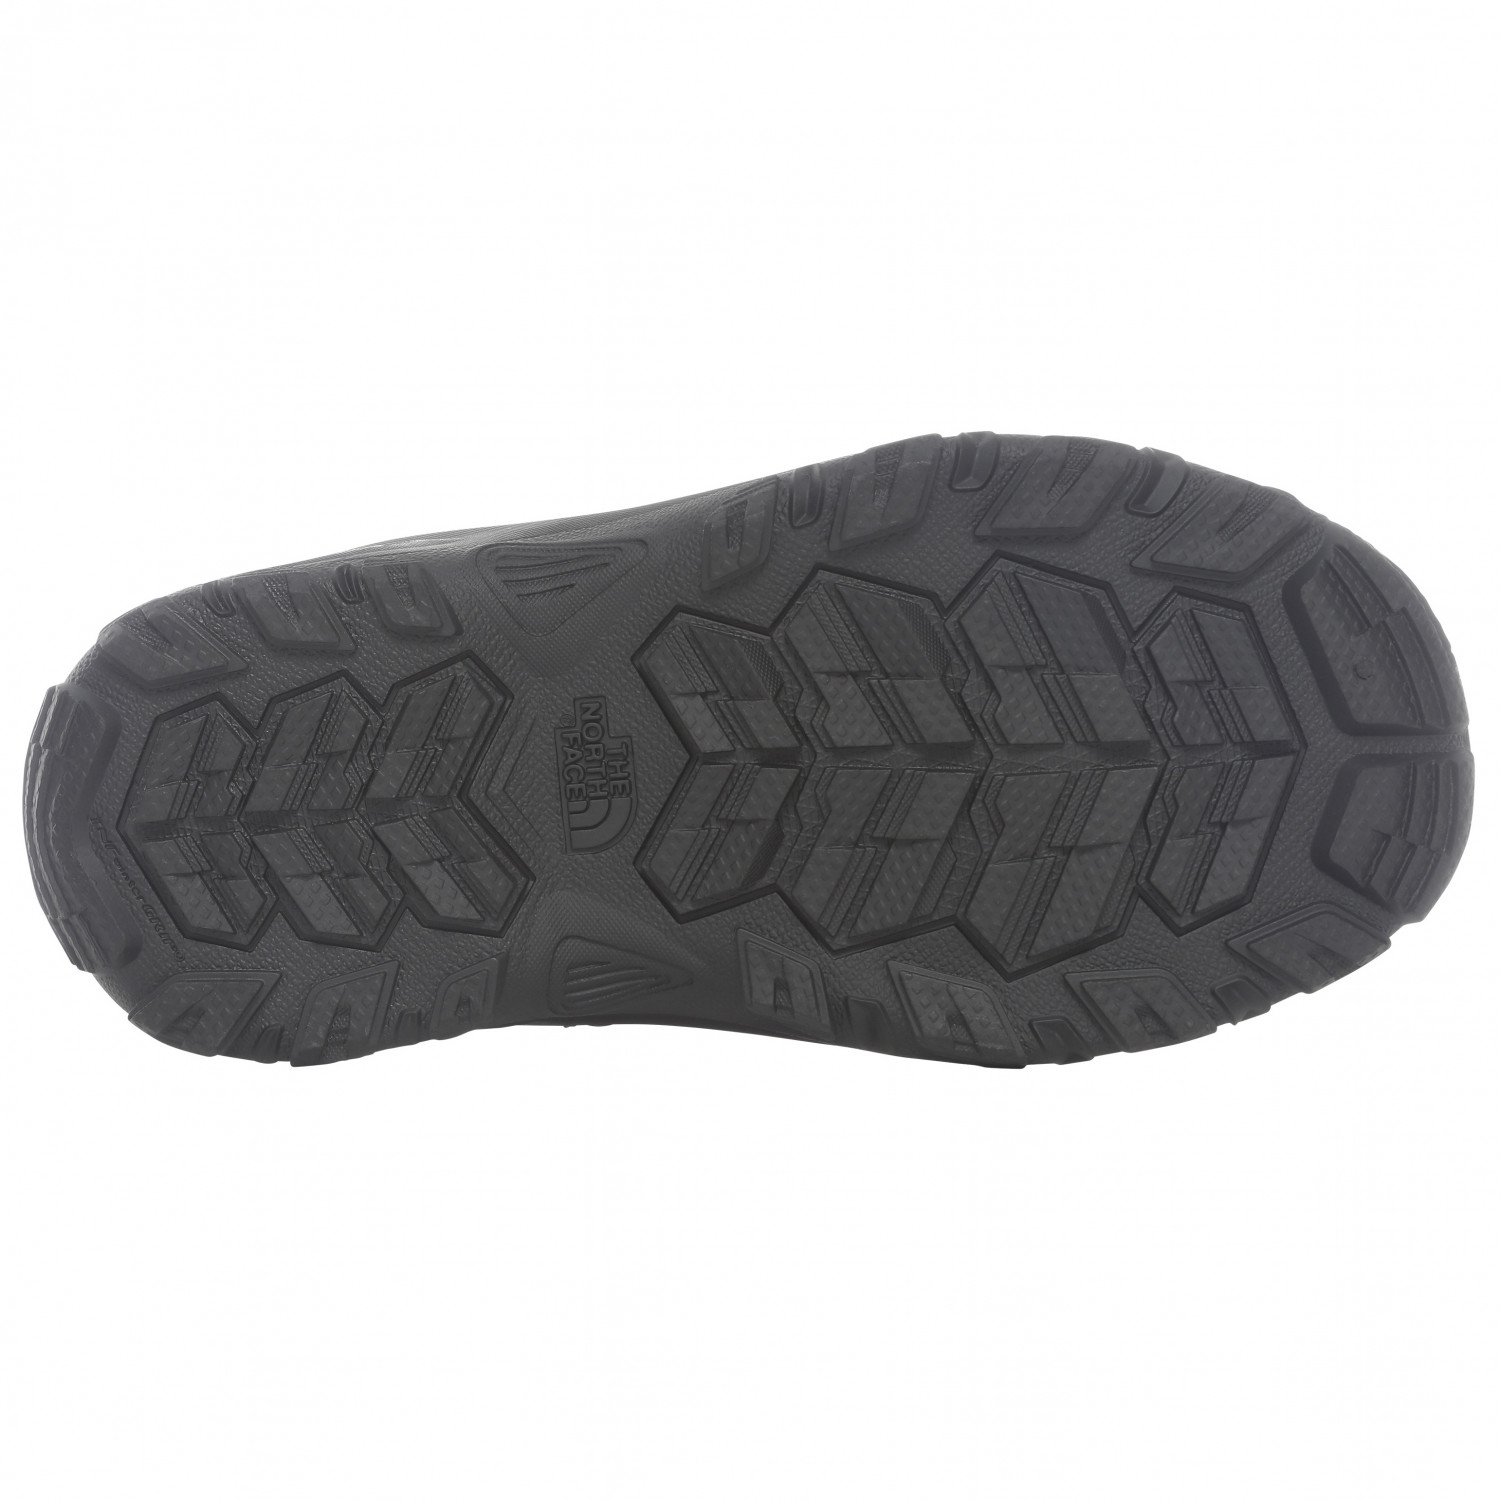 2154273f42 ... The North Face - Youth Chilkat Lace II - Winter boots ...